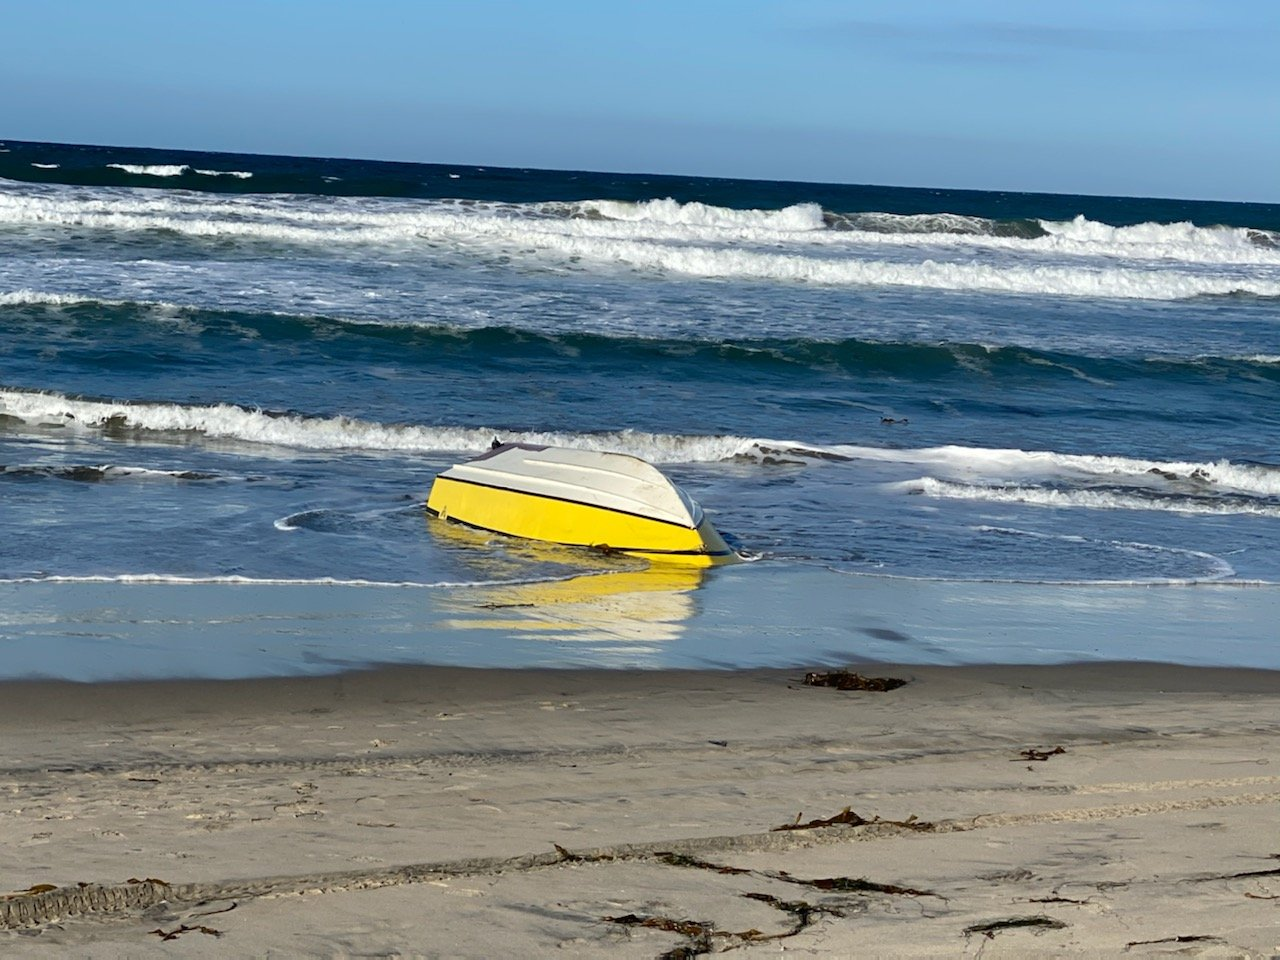 A suspected smuggling boat is seen after it capsized off the coast of Imperial Beach on Feb. 3, 2020. (Credit: U.S. Border Patrol)